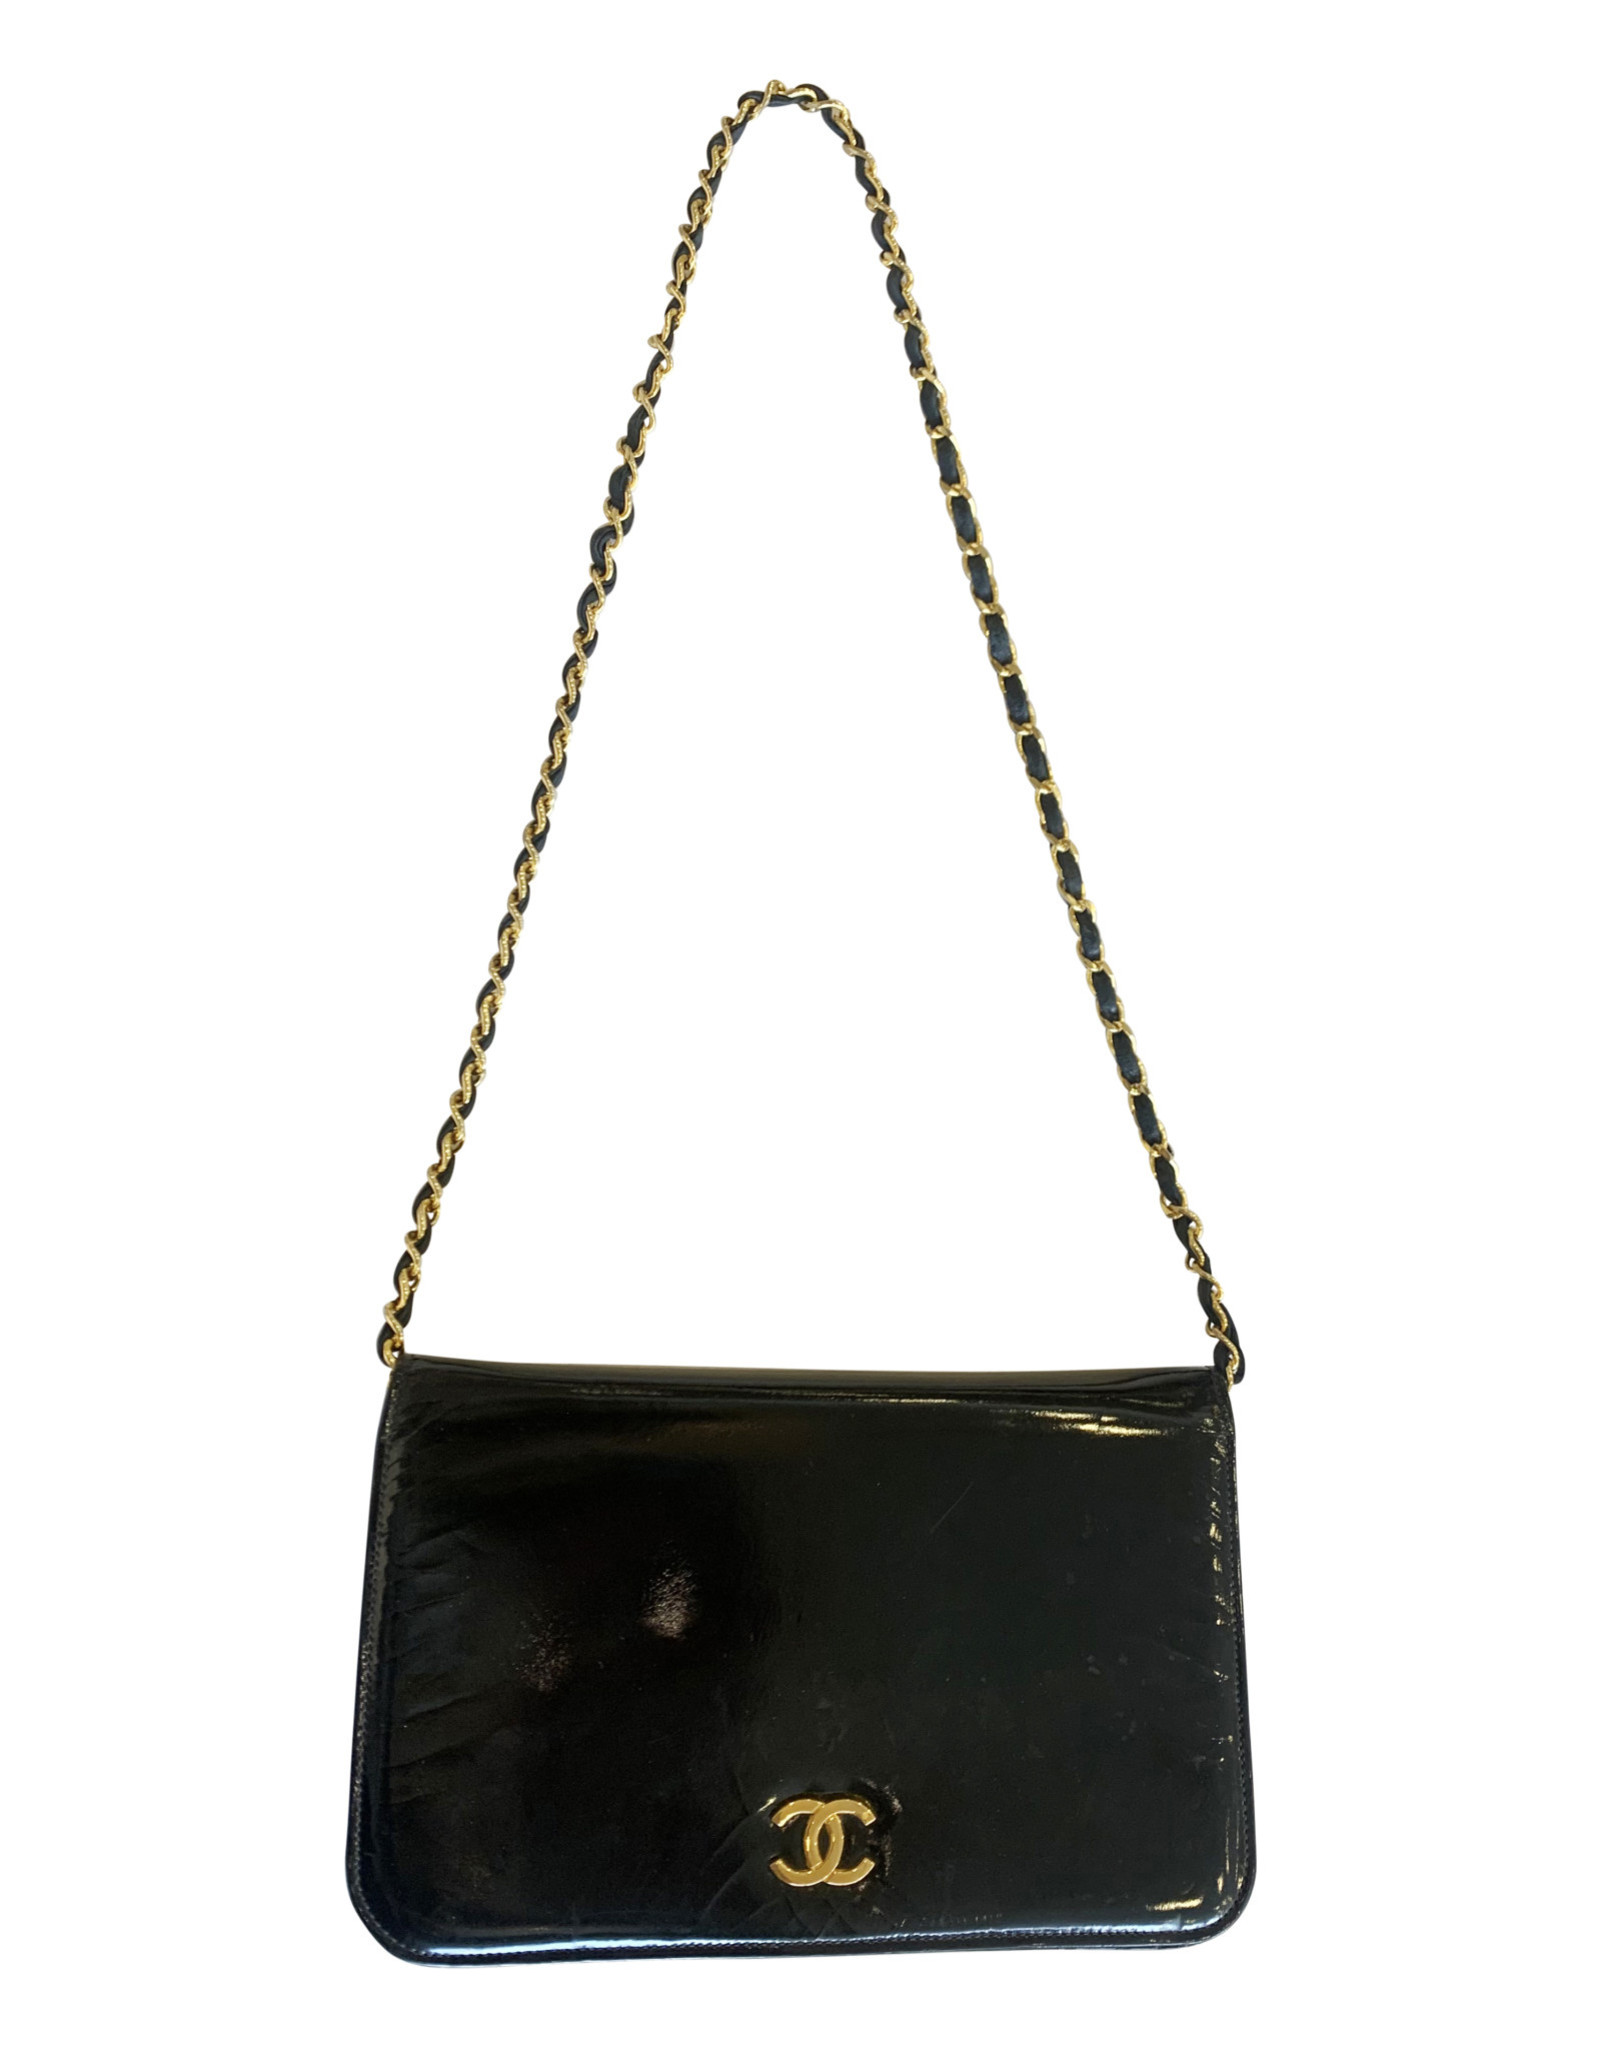 Chanel Chanel Black Patent Crossbody Bag (Vintage)